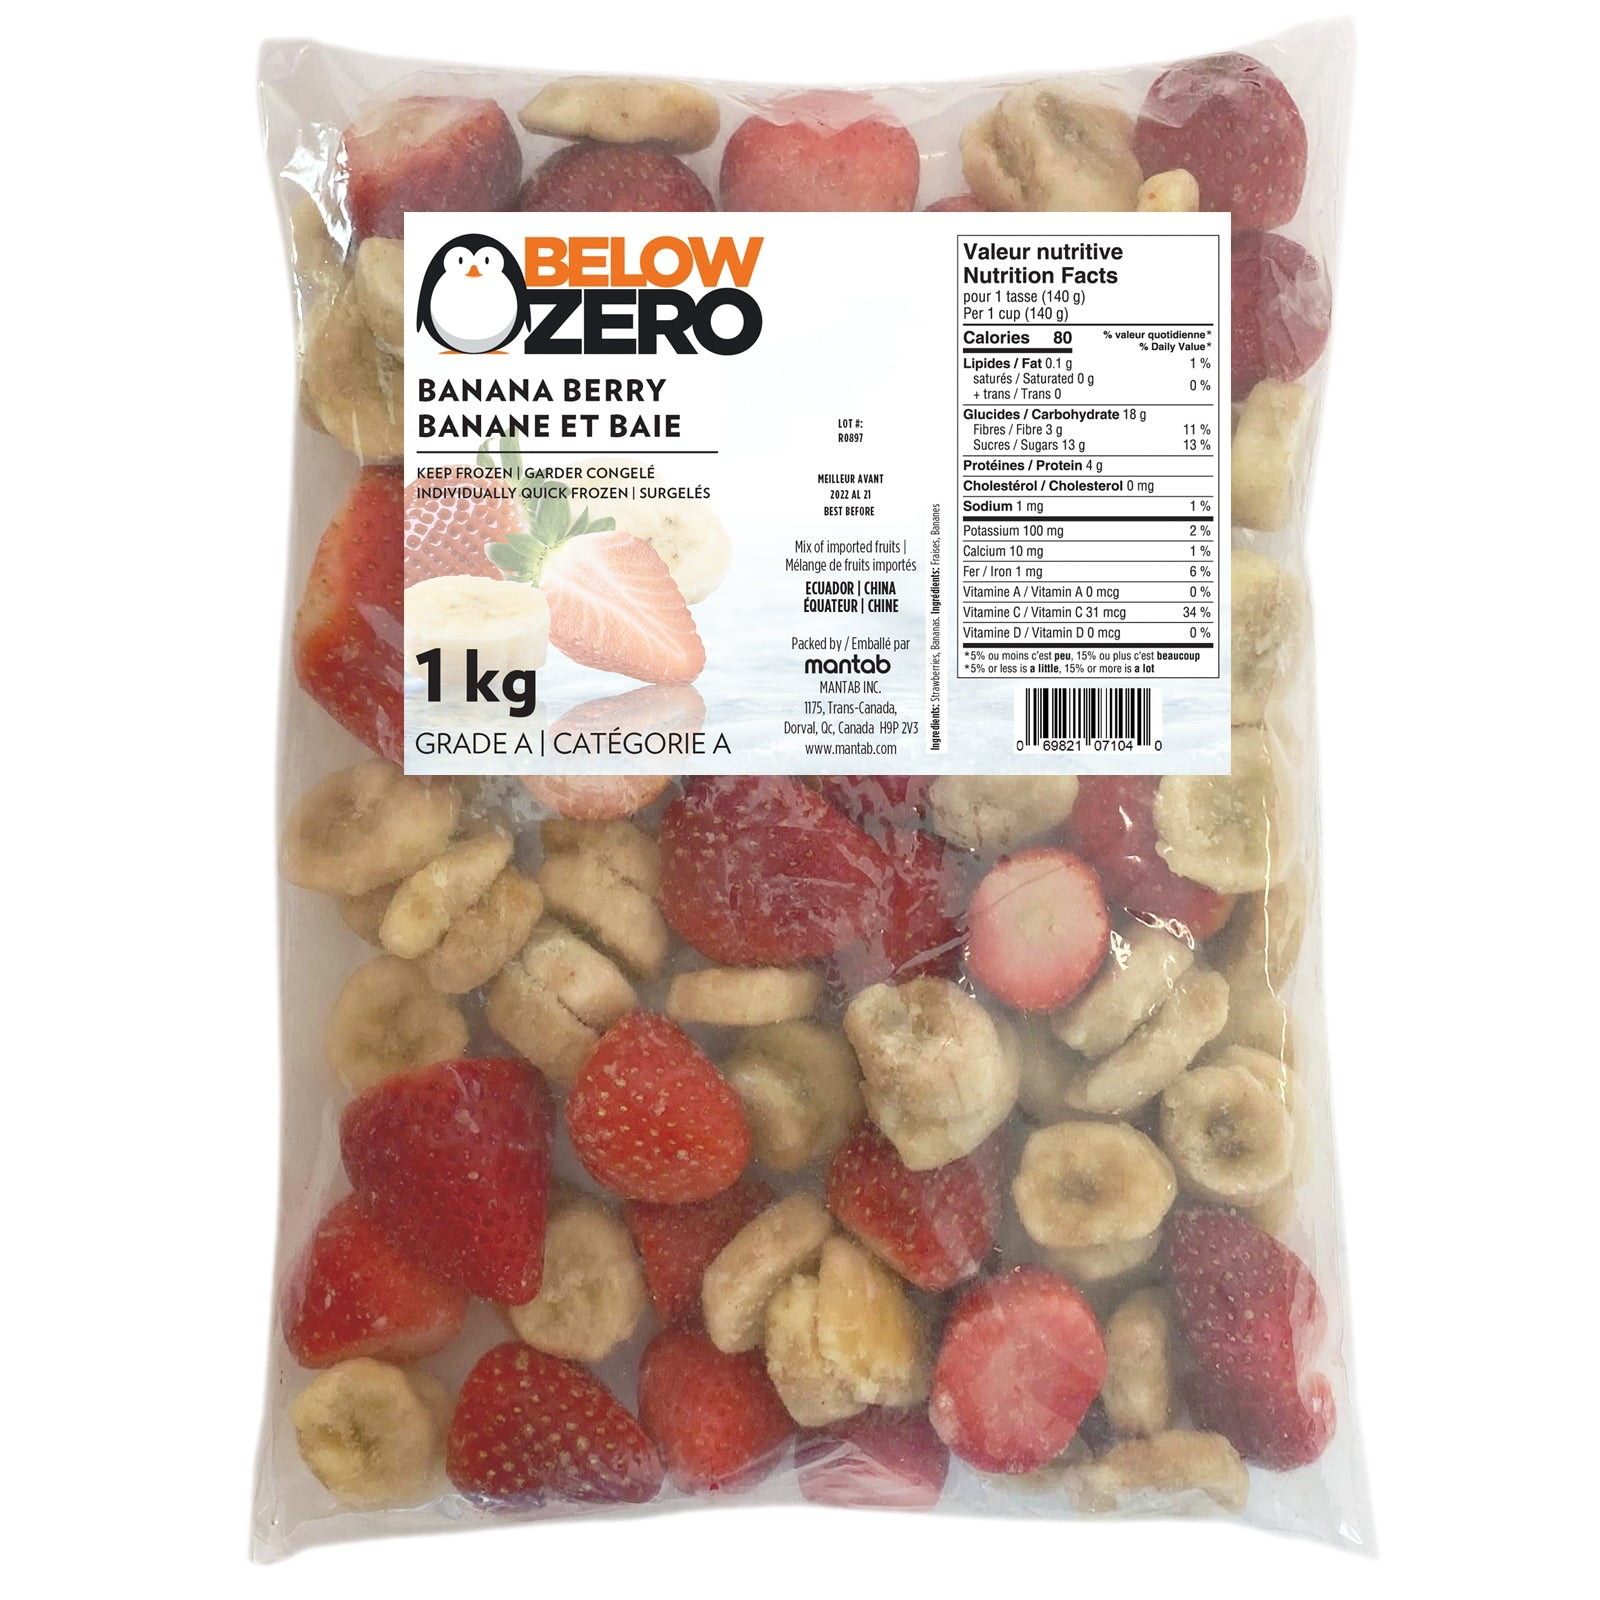 BELOW ZERO Banana berry